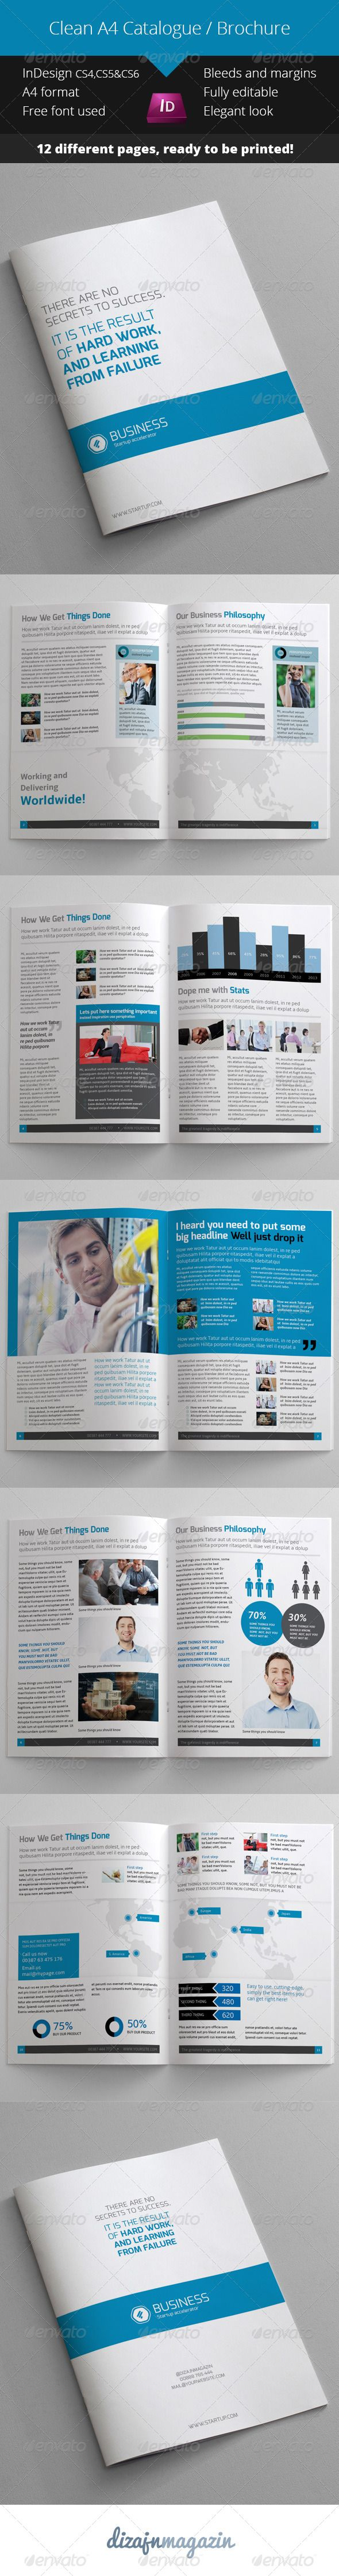 Clean Blue Catalogue Brochure InDesign Template Indesign - Brochure indesign templates